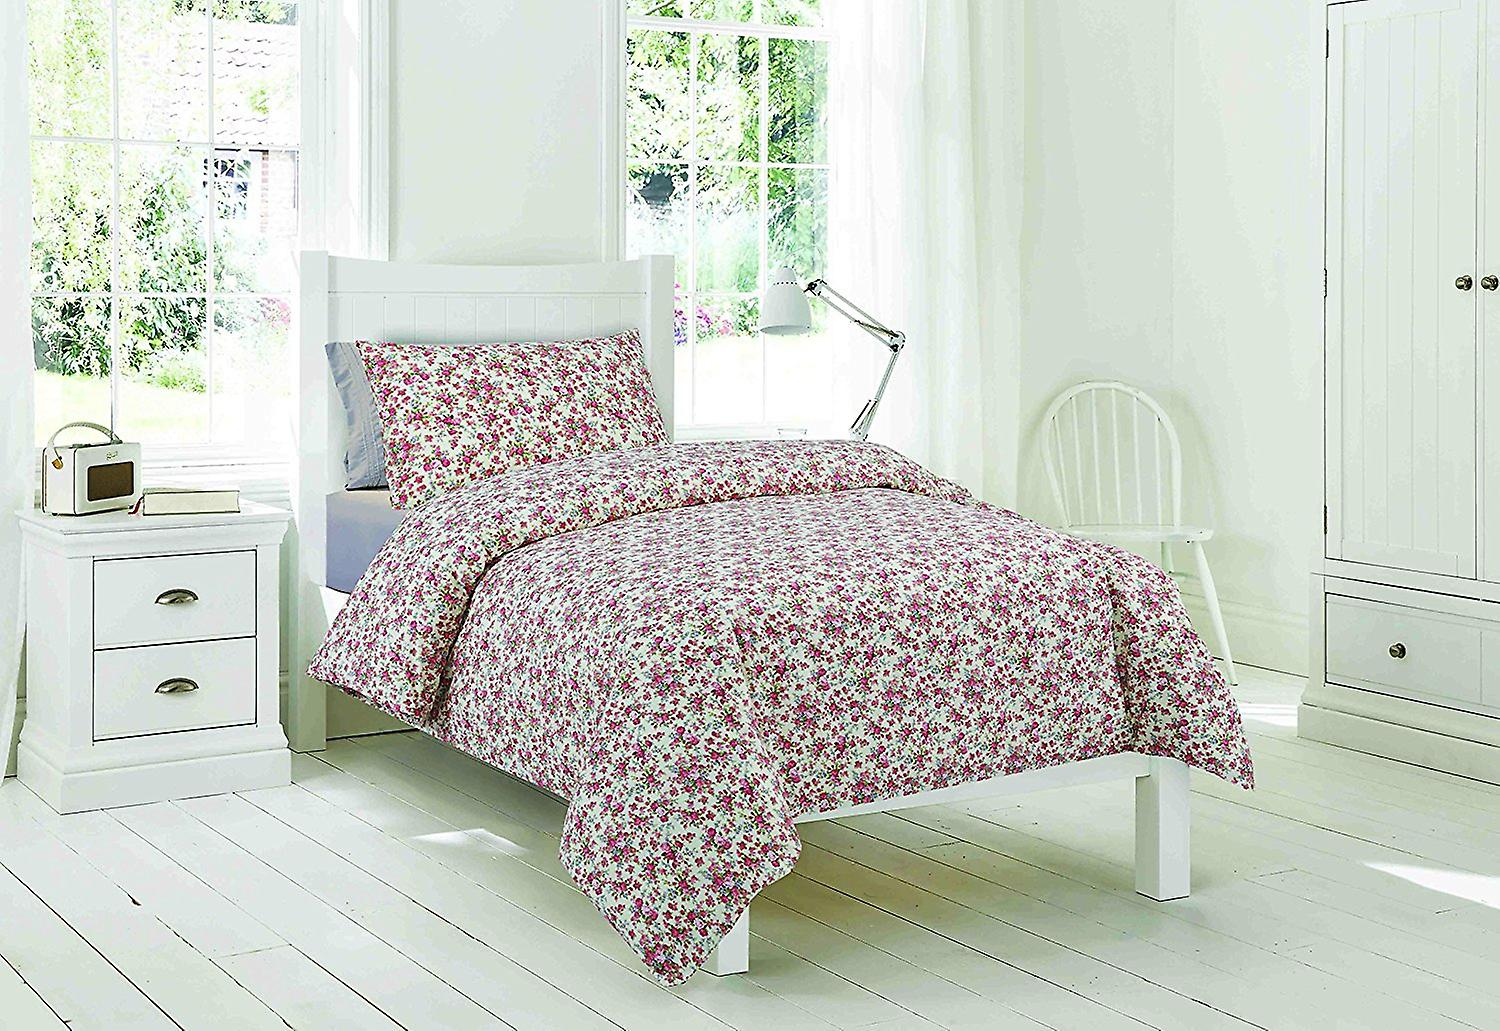 Easy-Fit Duvet Pink Floral